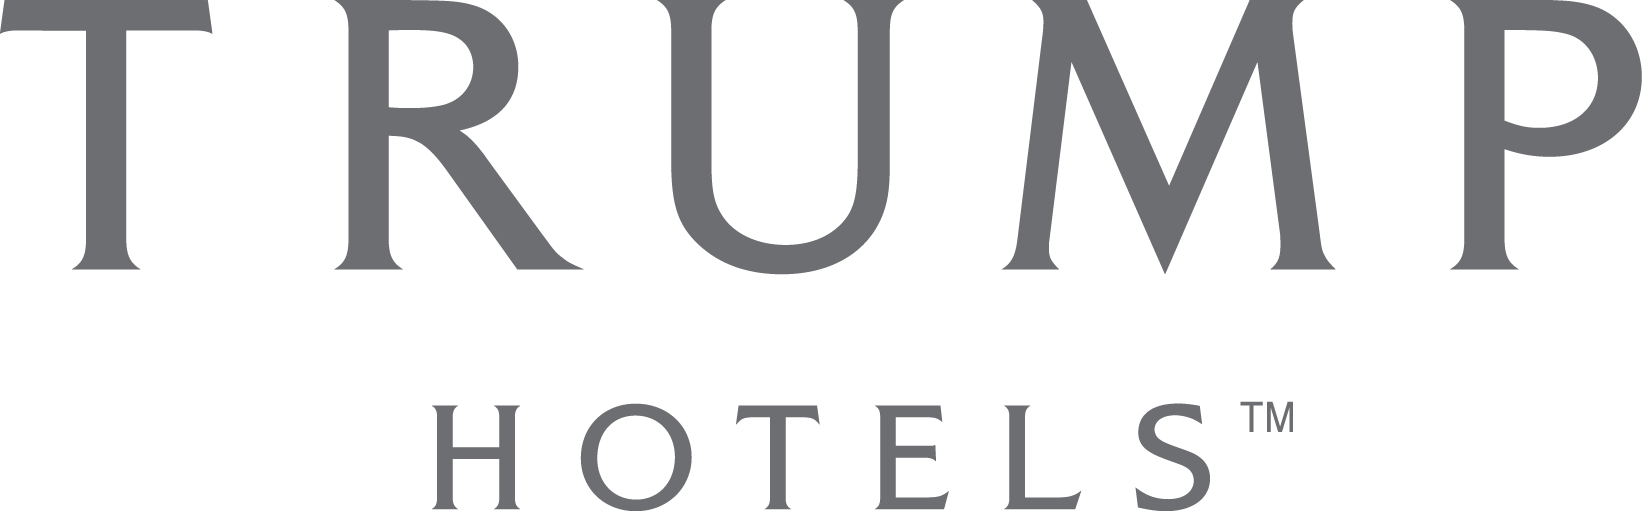 Trump logo png. Hotels transparent stickpng download